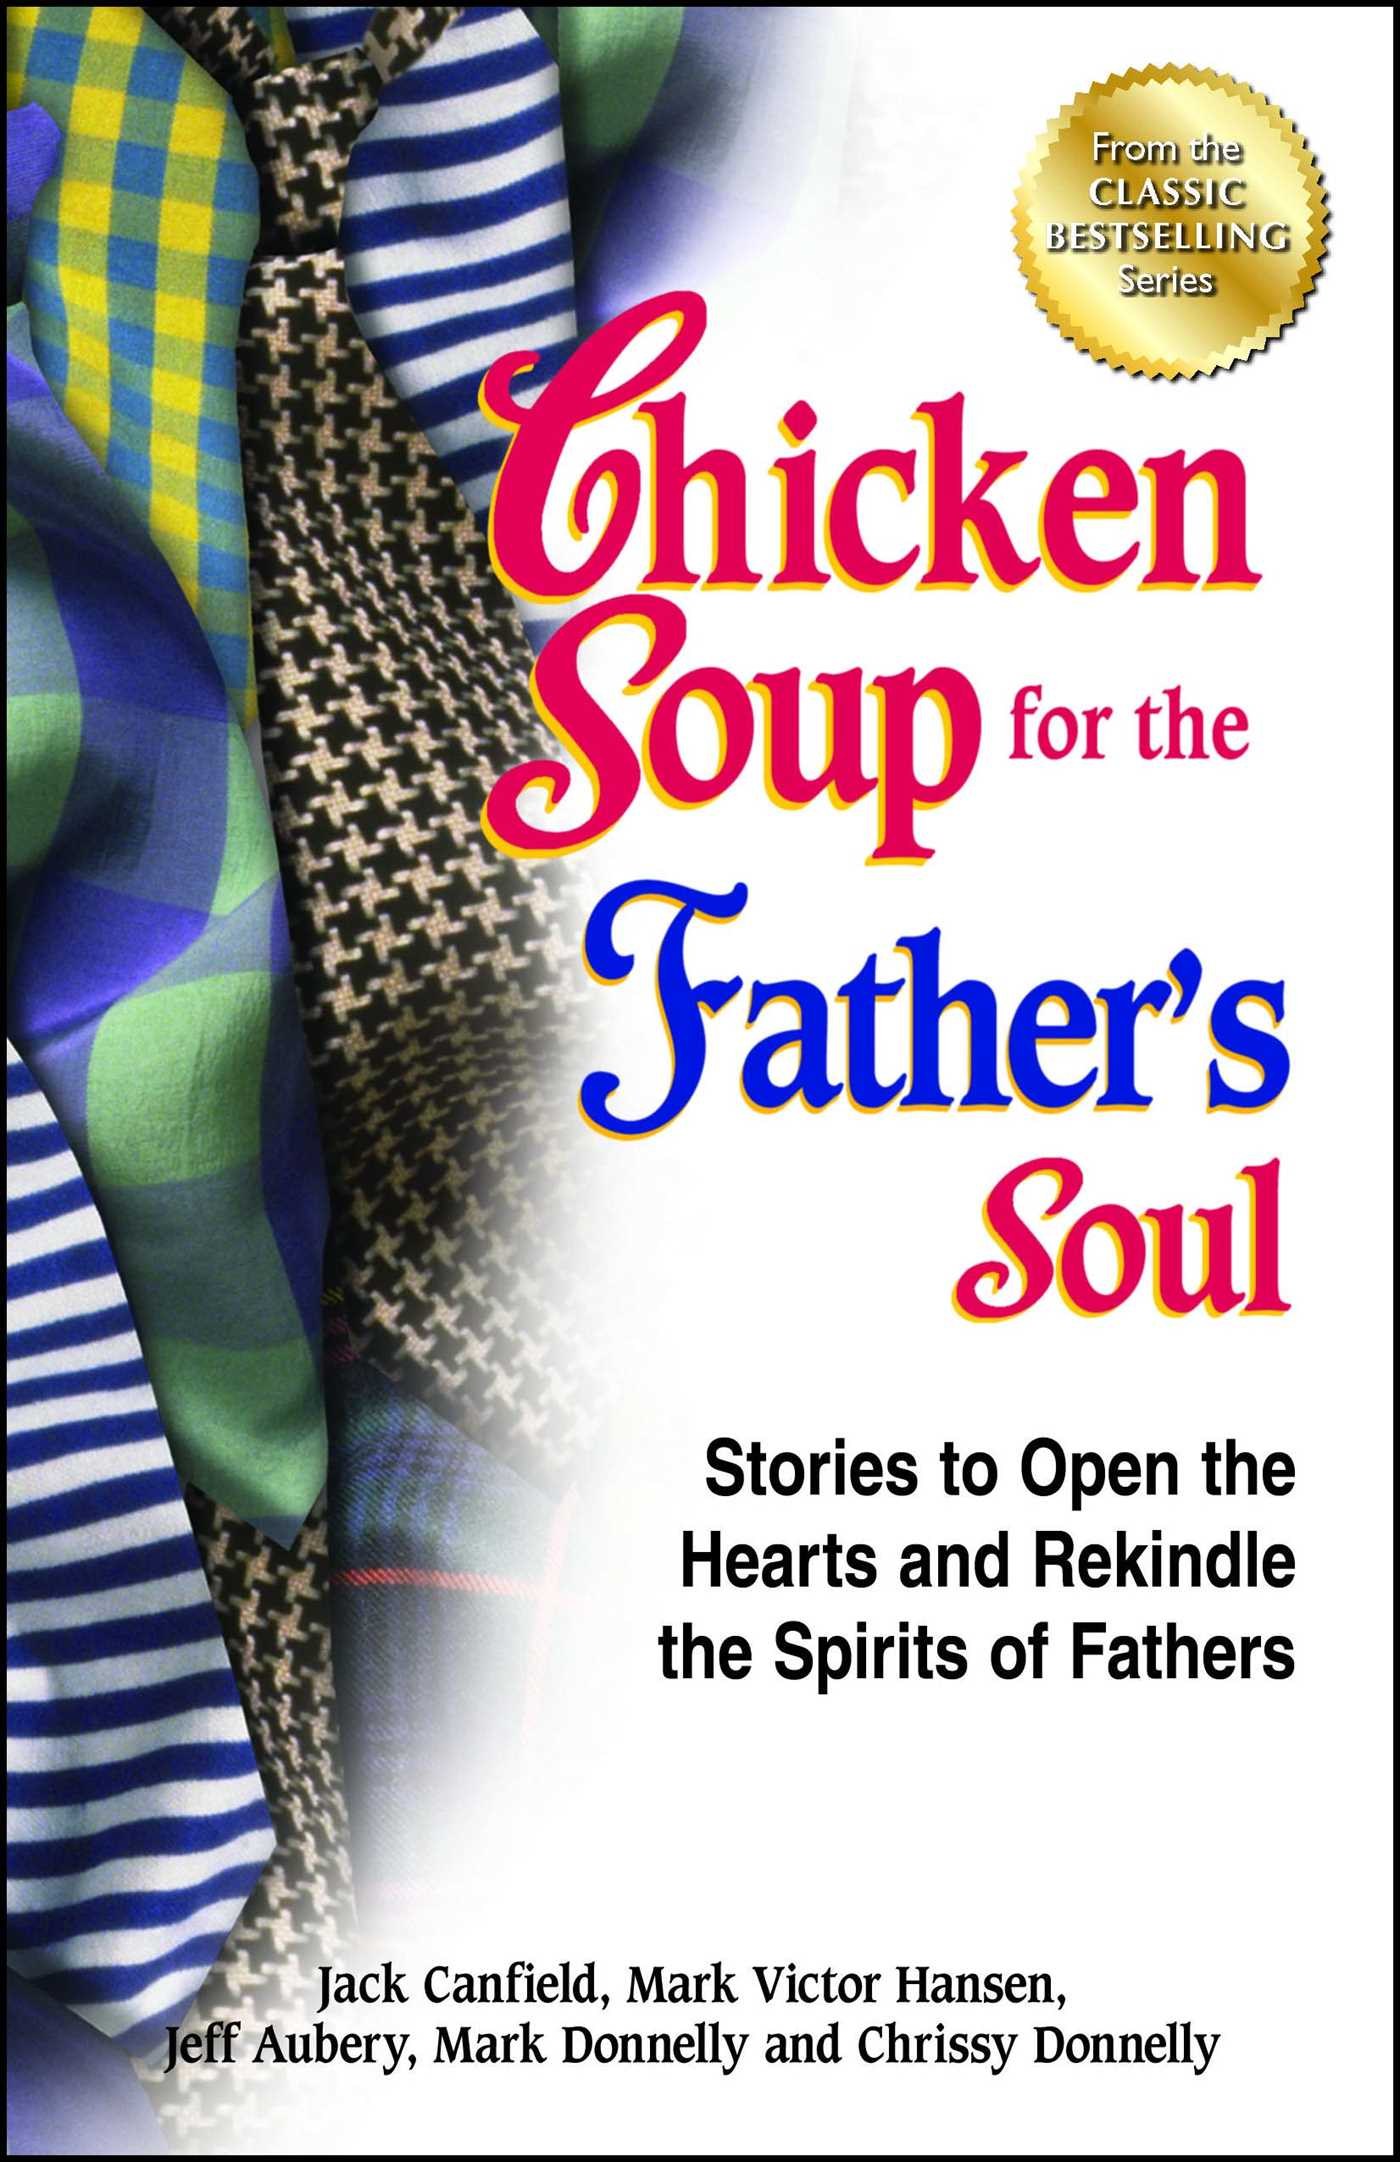 Chicken-soup-for-the-fathers-soul-9781623610999_hr